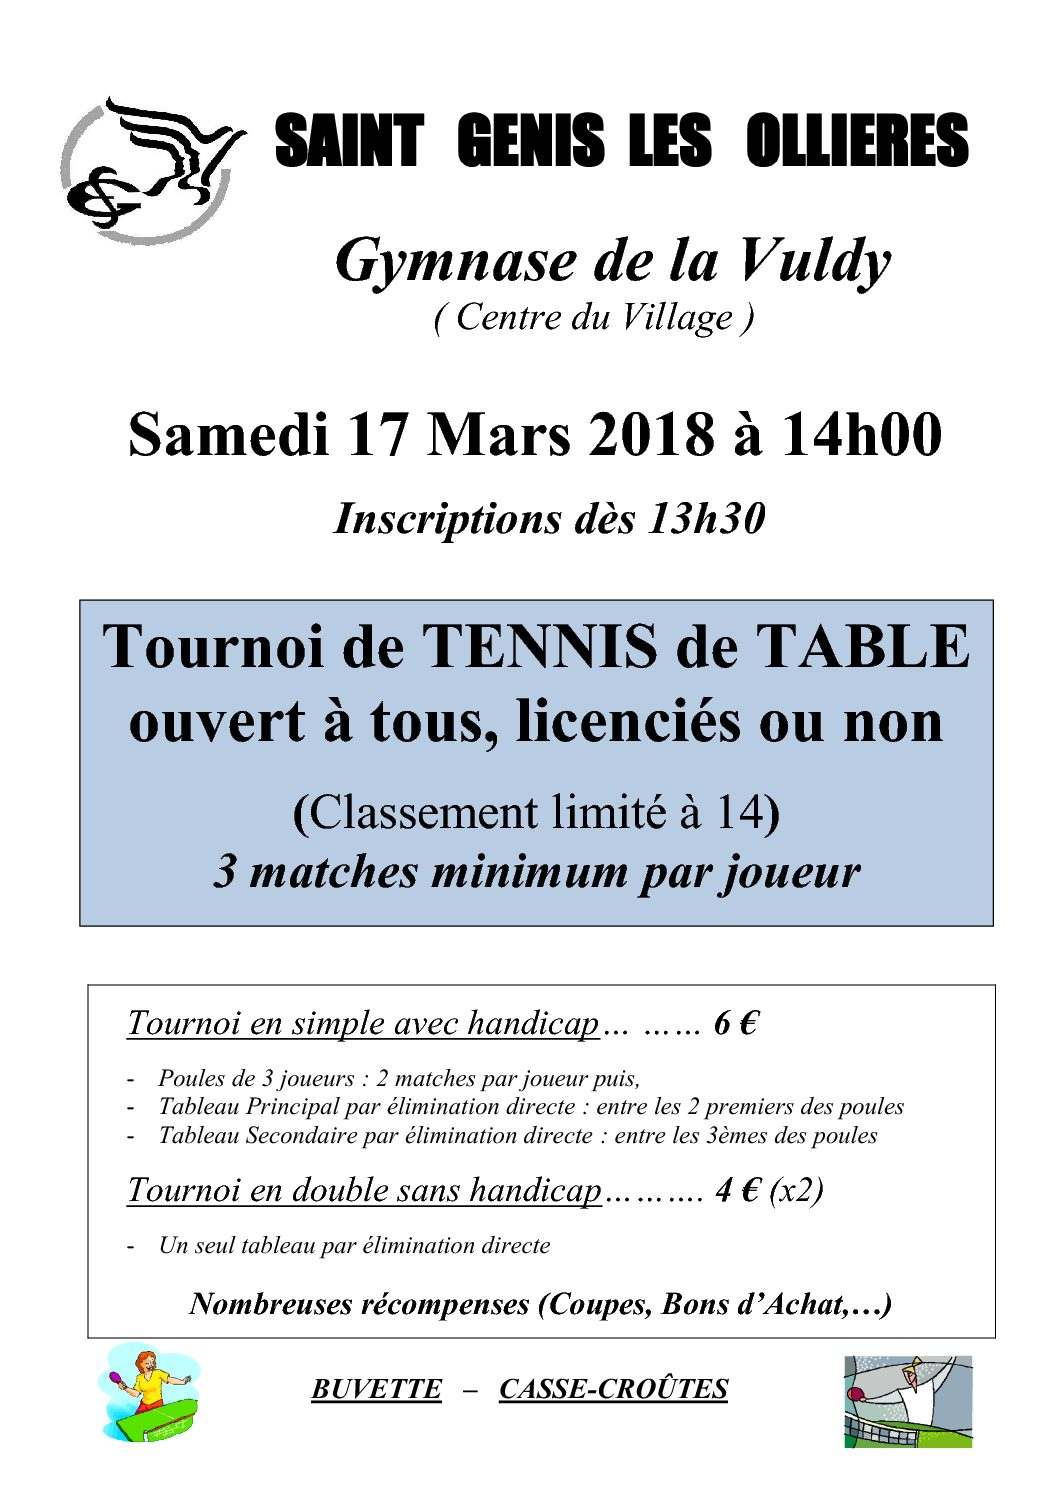 ESG Tennis de Table : tournoi de tennis de table ouvert à tous ! 17 mars 2018 à 14h